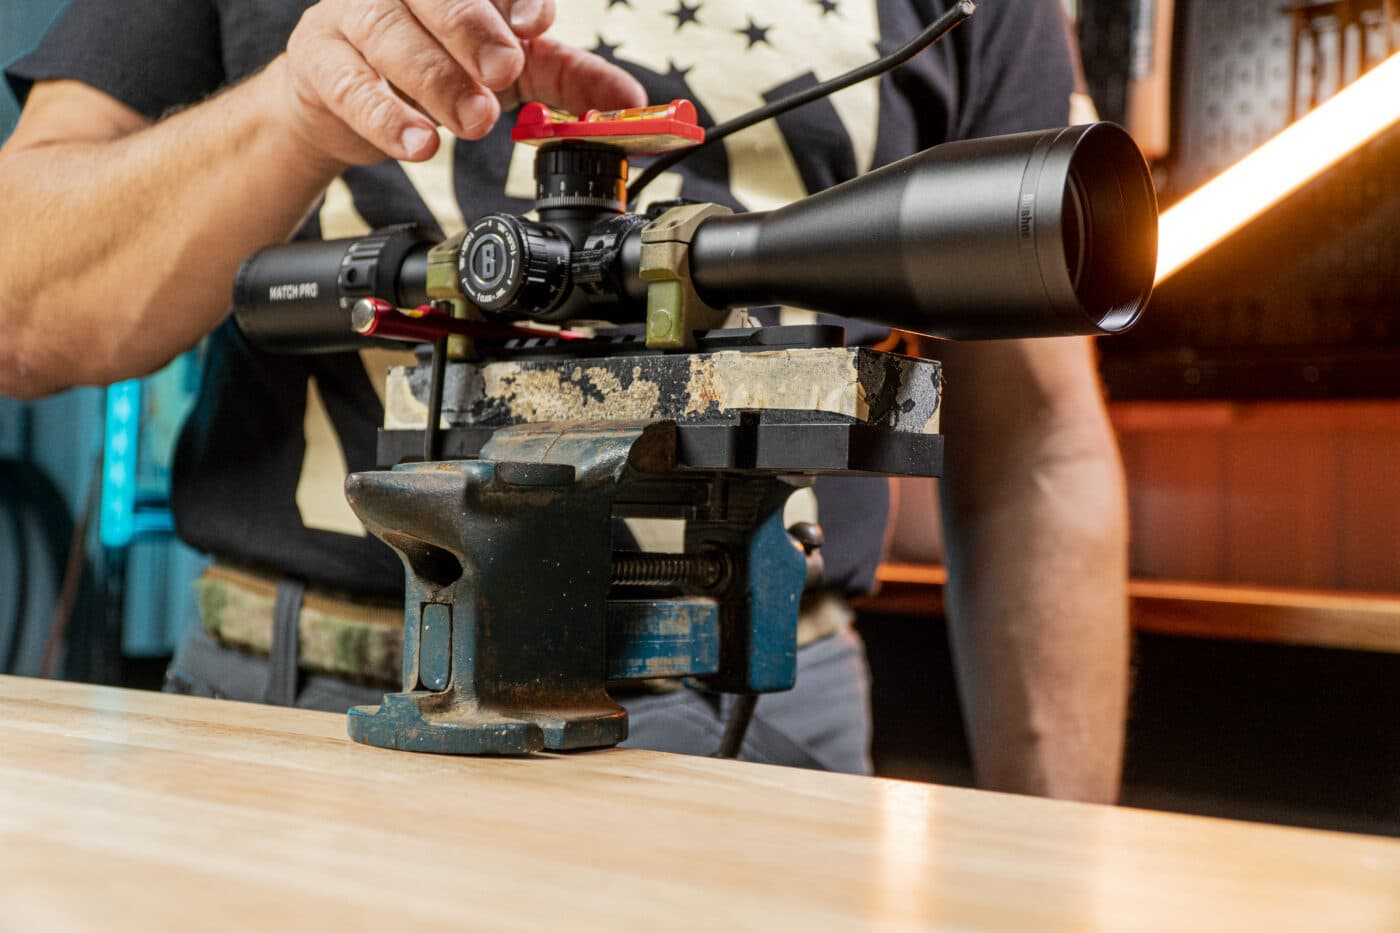 Man starting the scope mounting process using a level